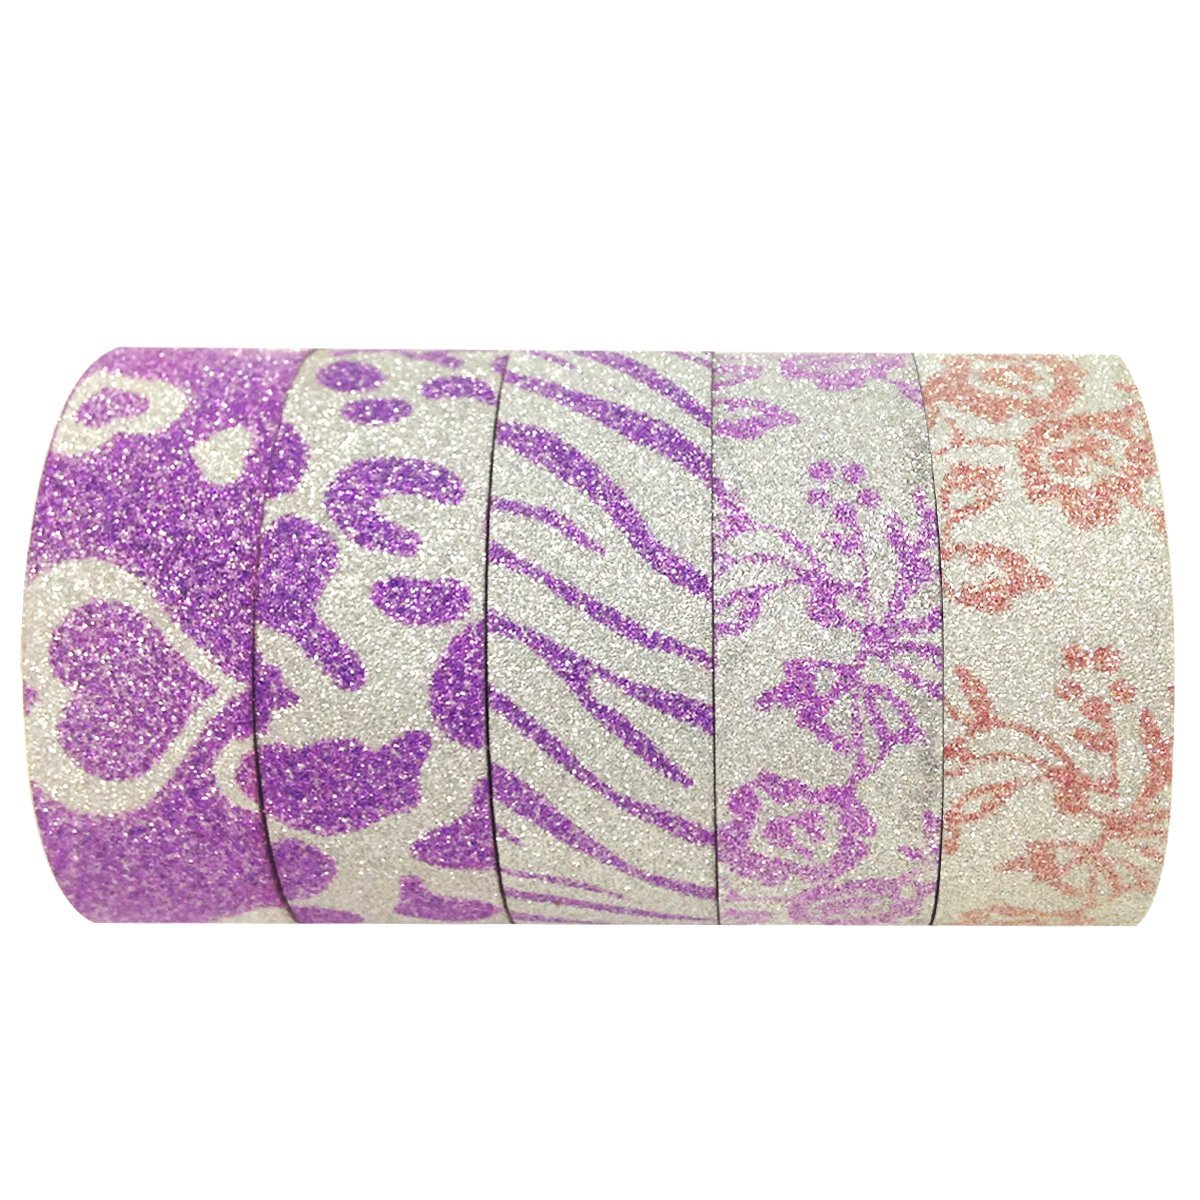 Wrapables Japanese Washi Masking Tape, Glitter Collection (Set of 6)